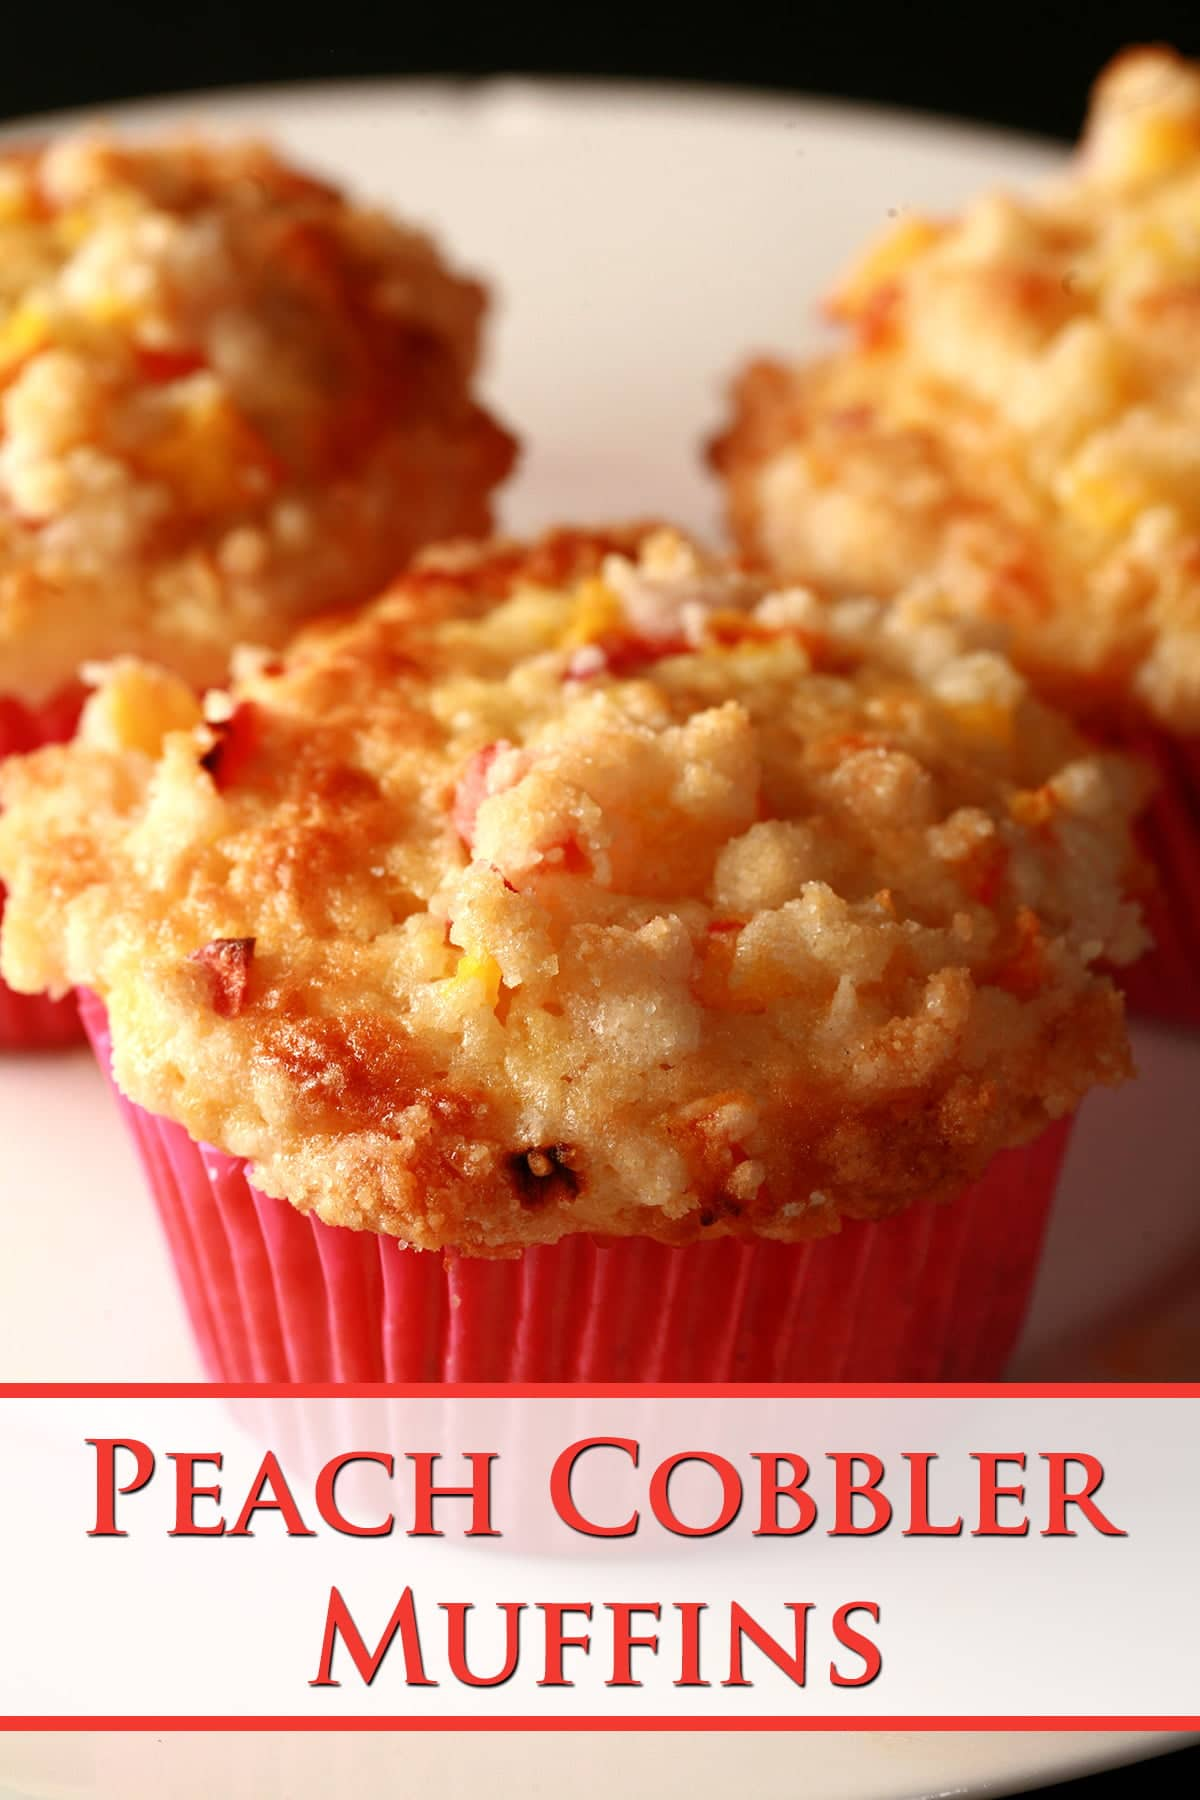 3 Peach cobbler muffins on a white plate. The muffins have small pieces of peach and streusel on top, and each has a pink liner.